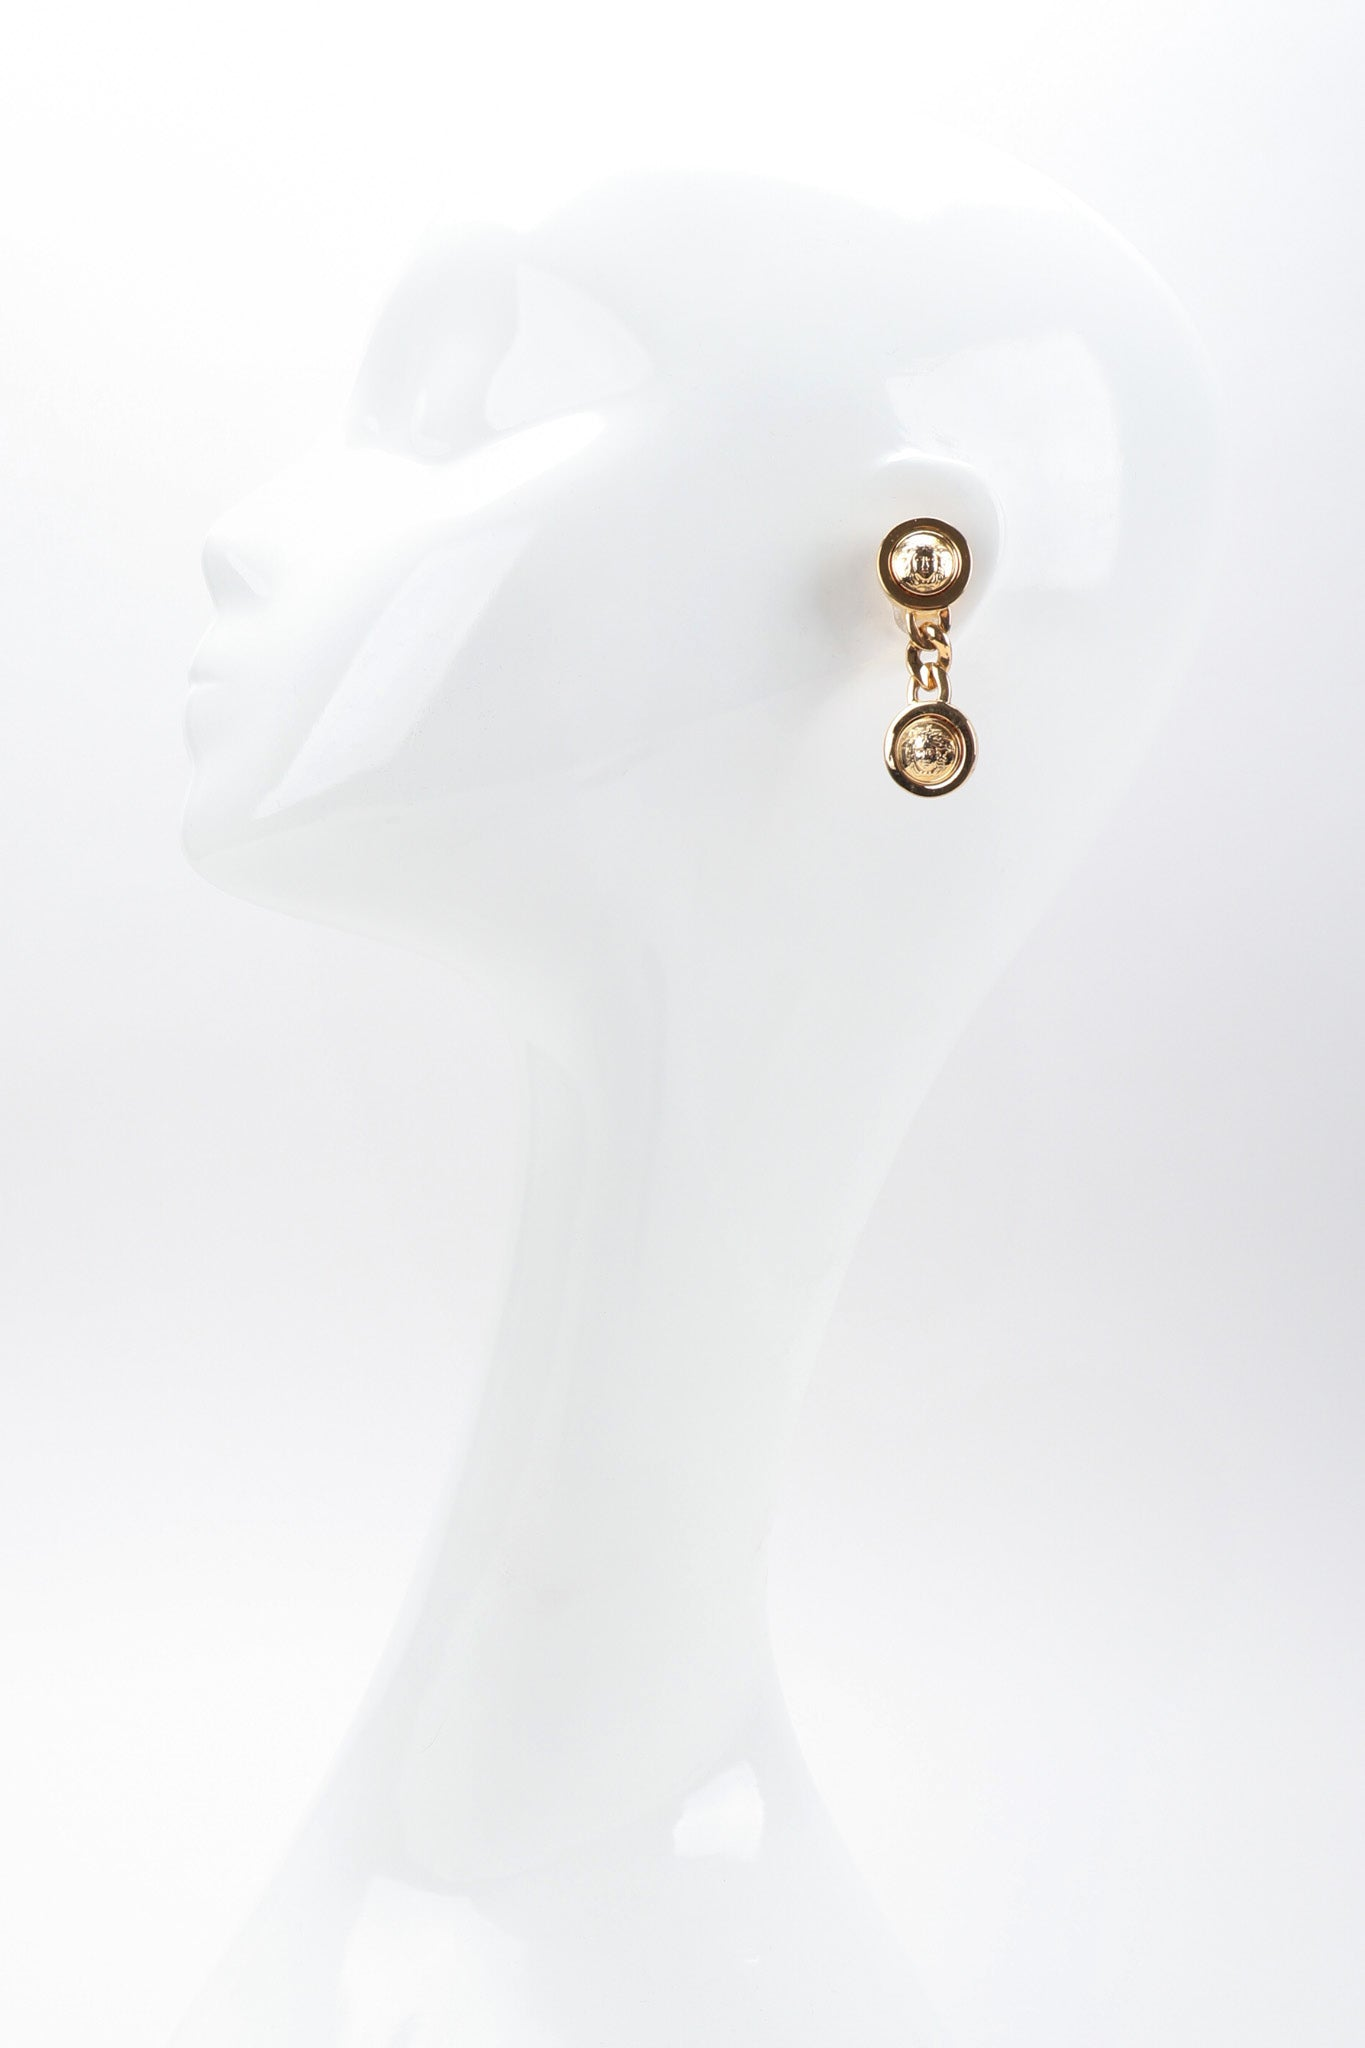 6f24c20c7fed Recess Los Angeles Vintage Gianni Versace Medusa Gold Coin Drop Earrings